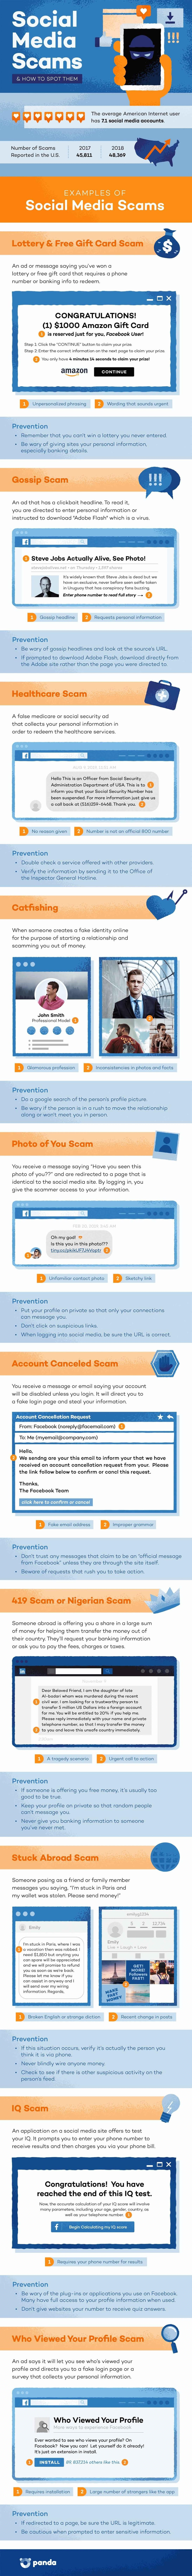 Social Media / 10 Social Media Scams and How to Spot Them #infographic